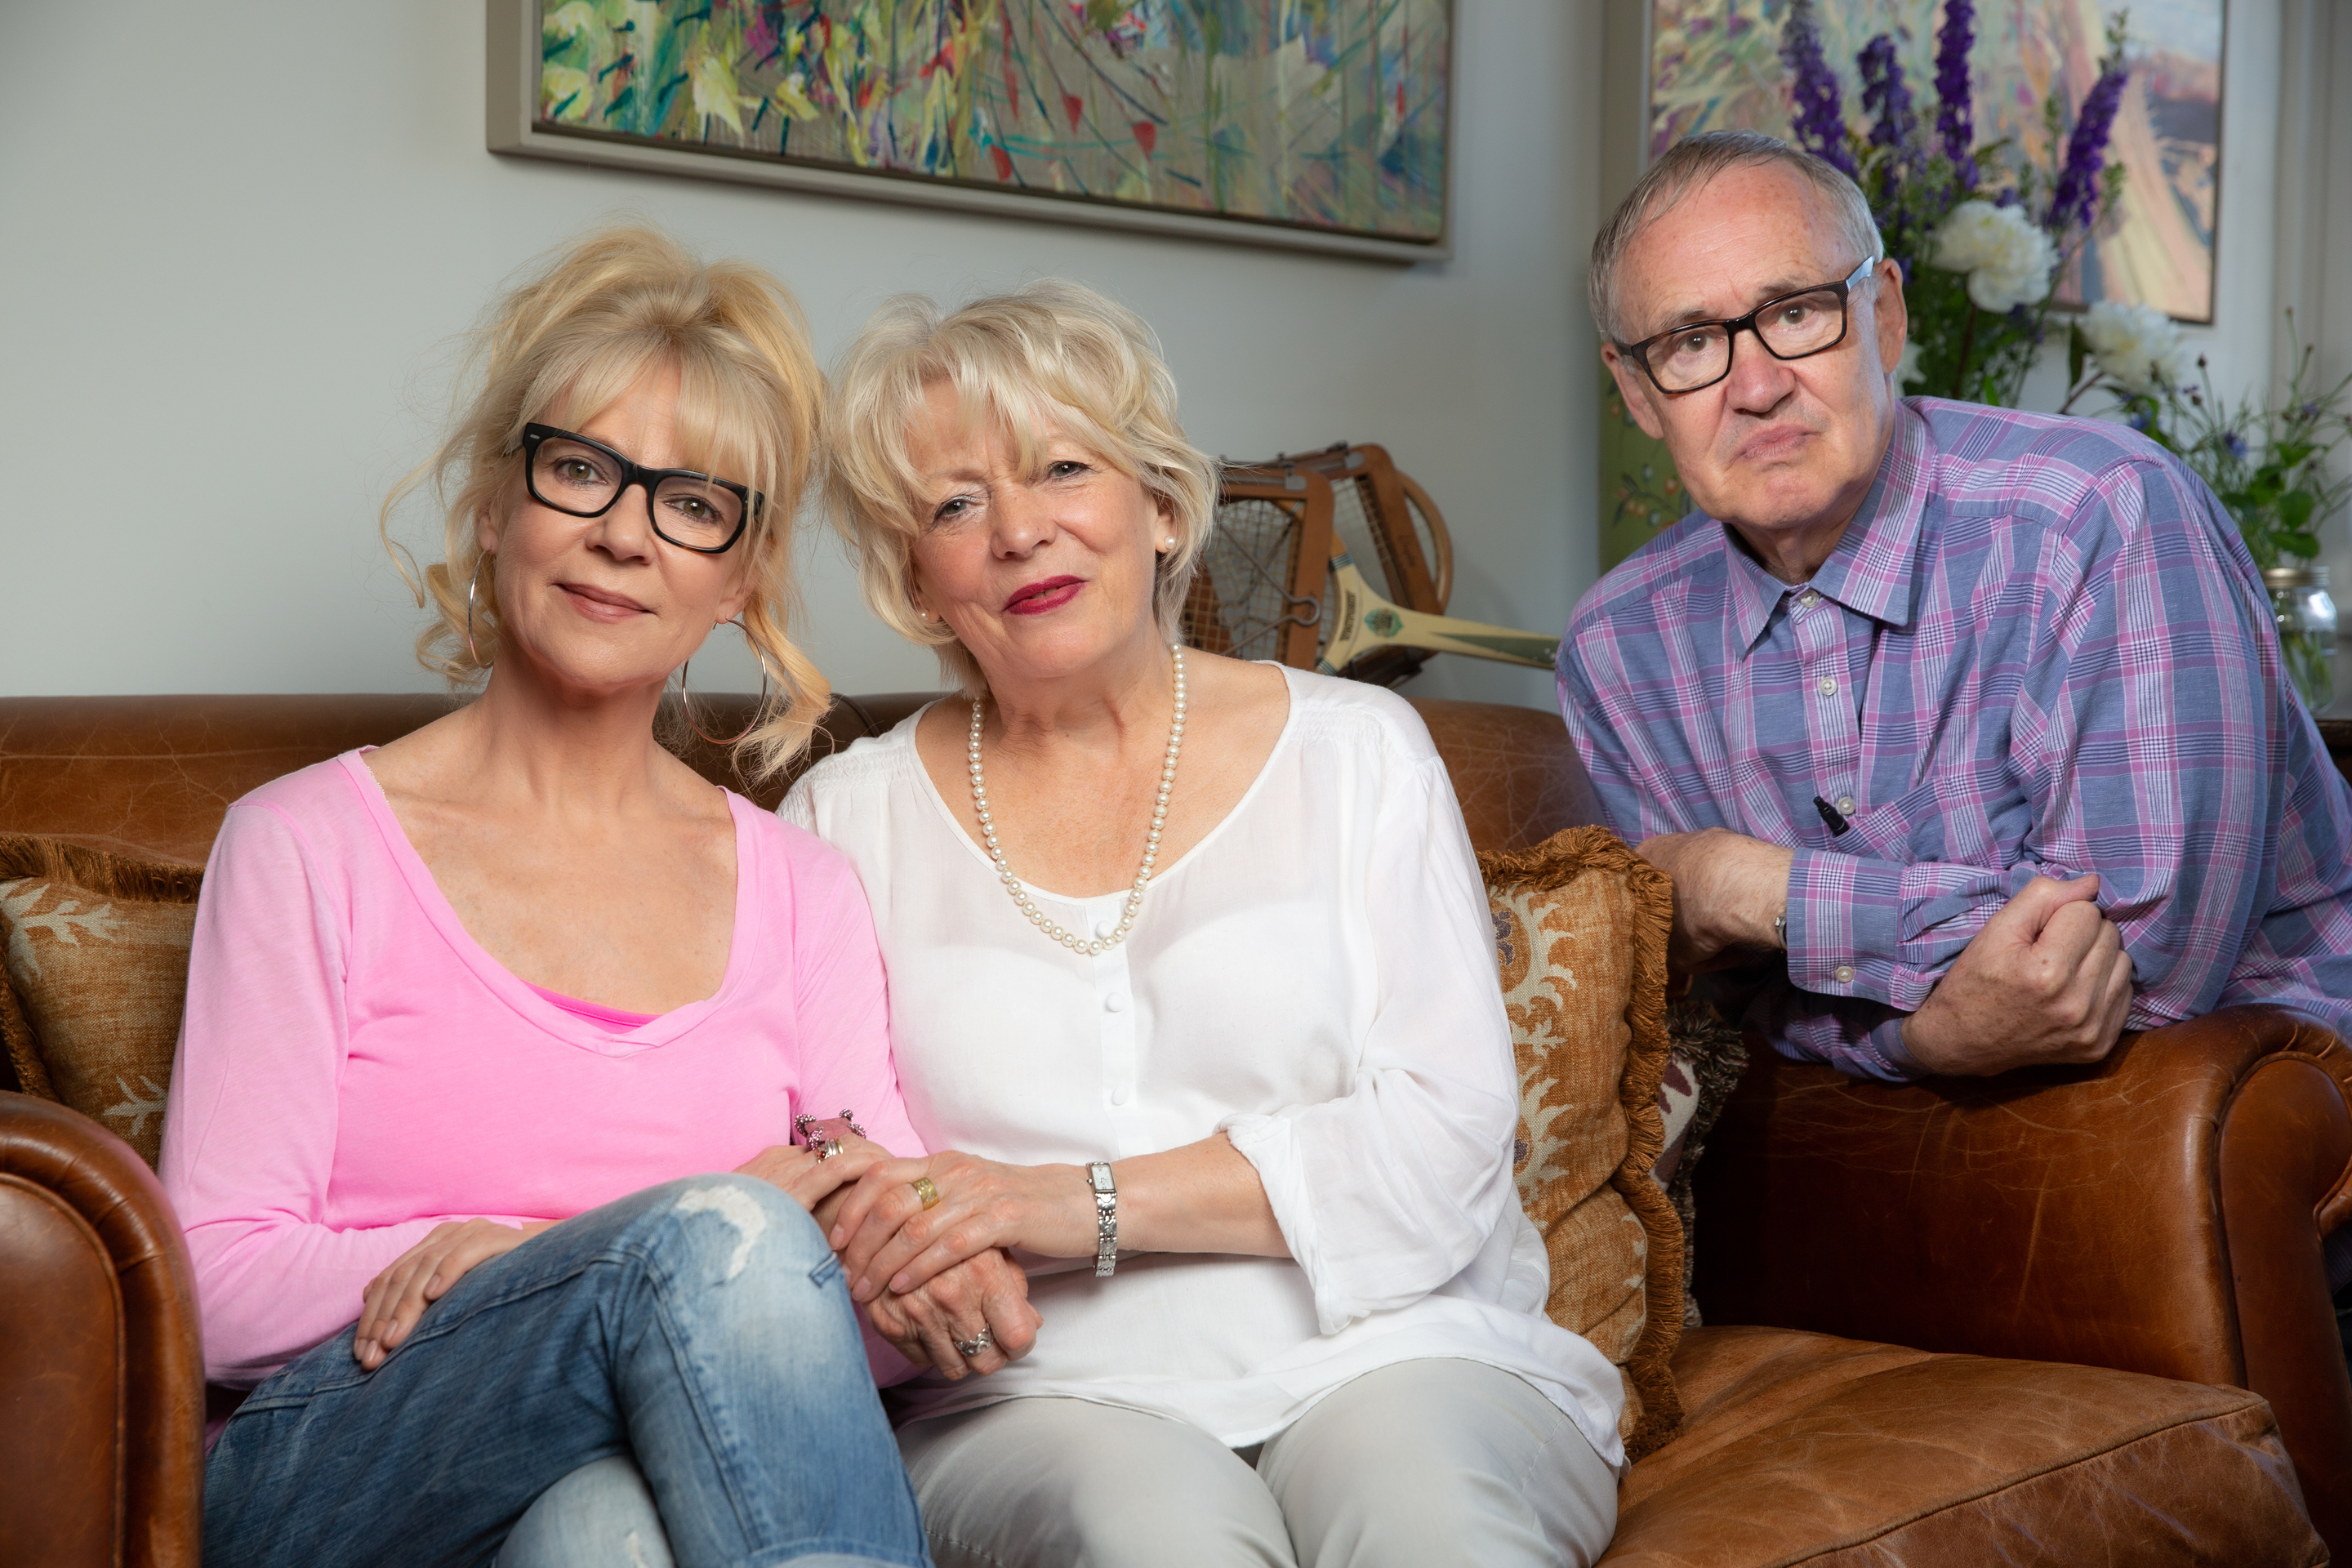 The cast of Skeletons in the Cupboard. From left: Morwenna Banks, Alison Steadman and Nigel Planer